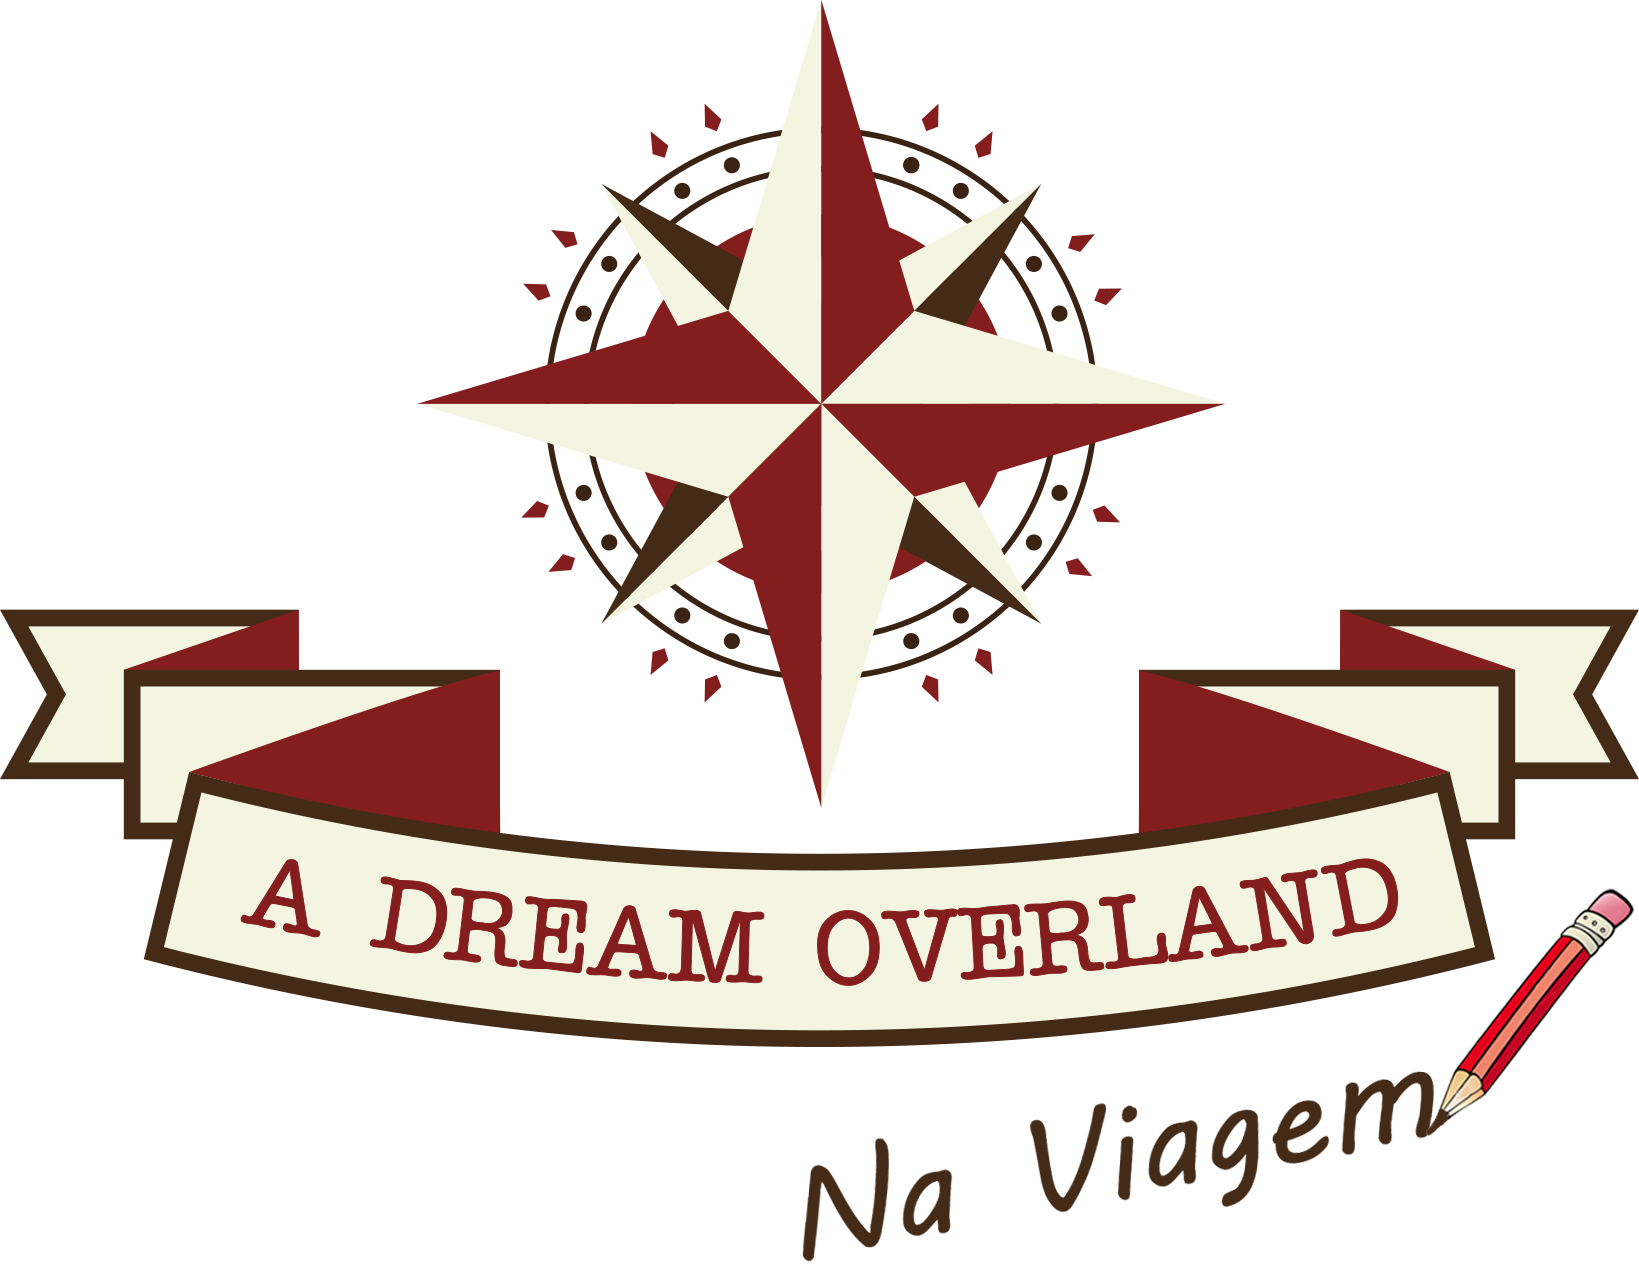 A Dream Overland